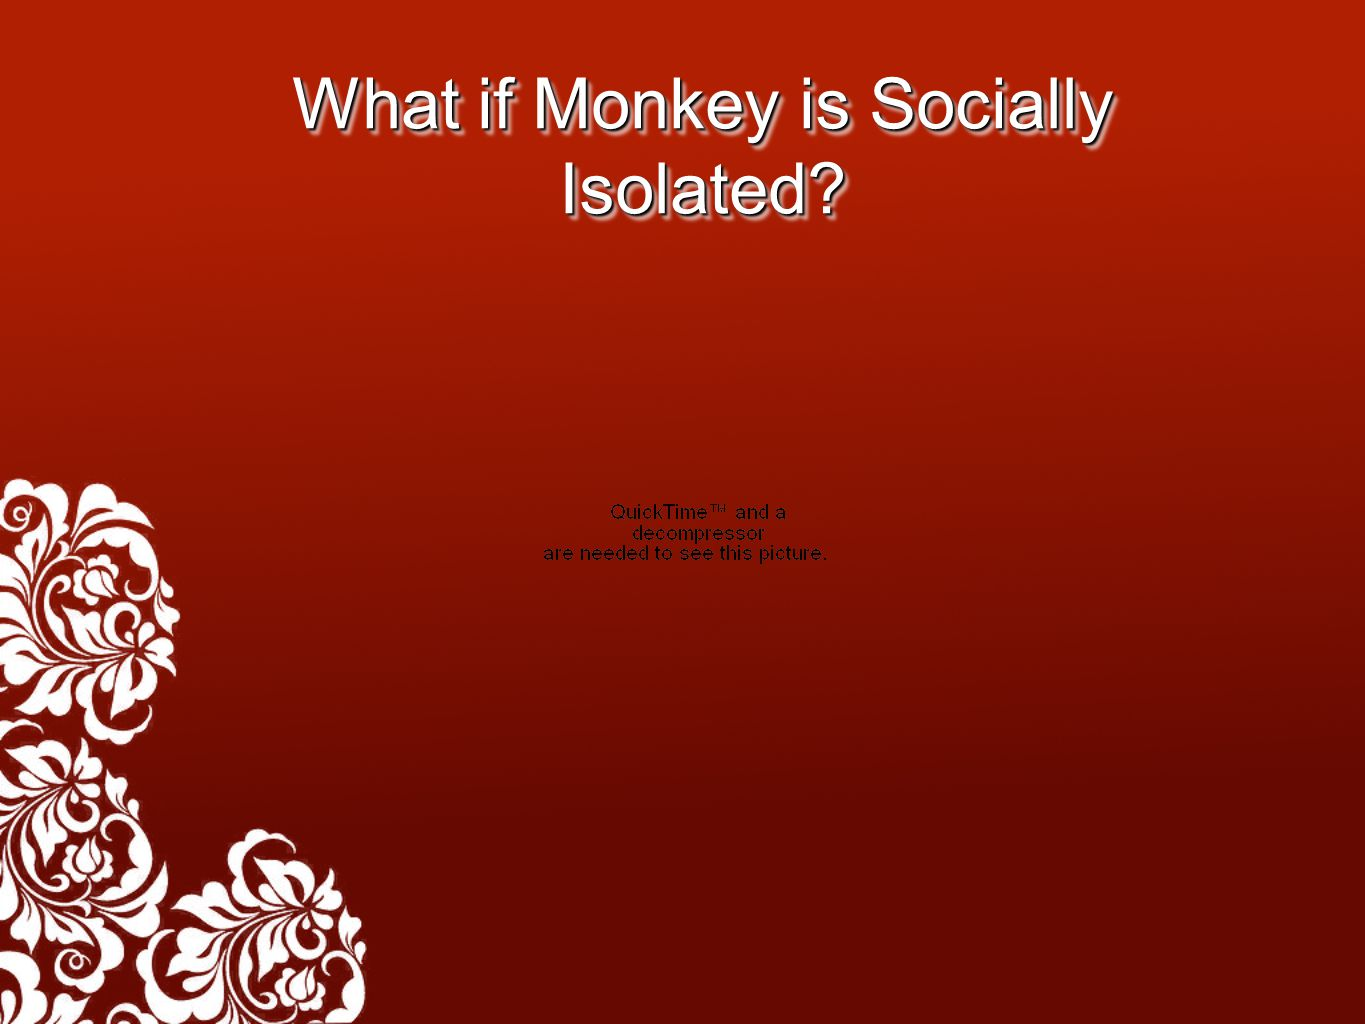 What if Monkey is Socially Isolated